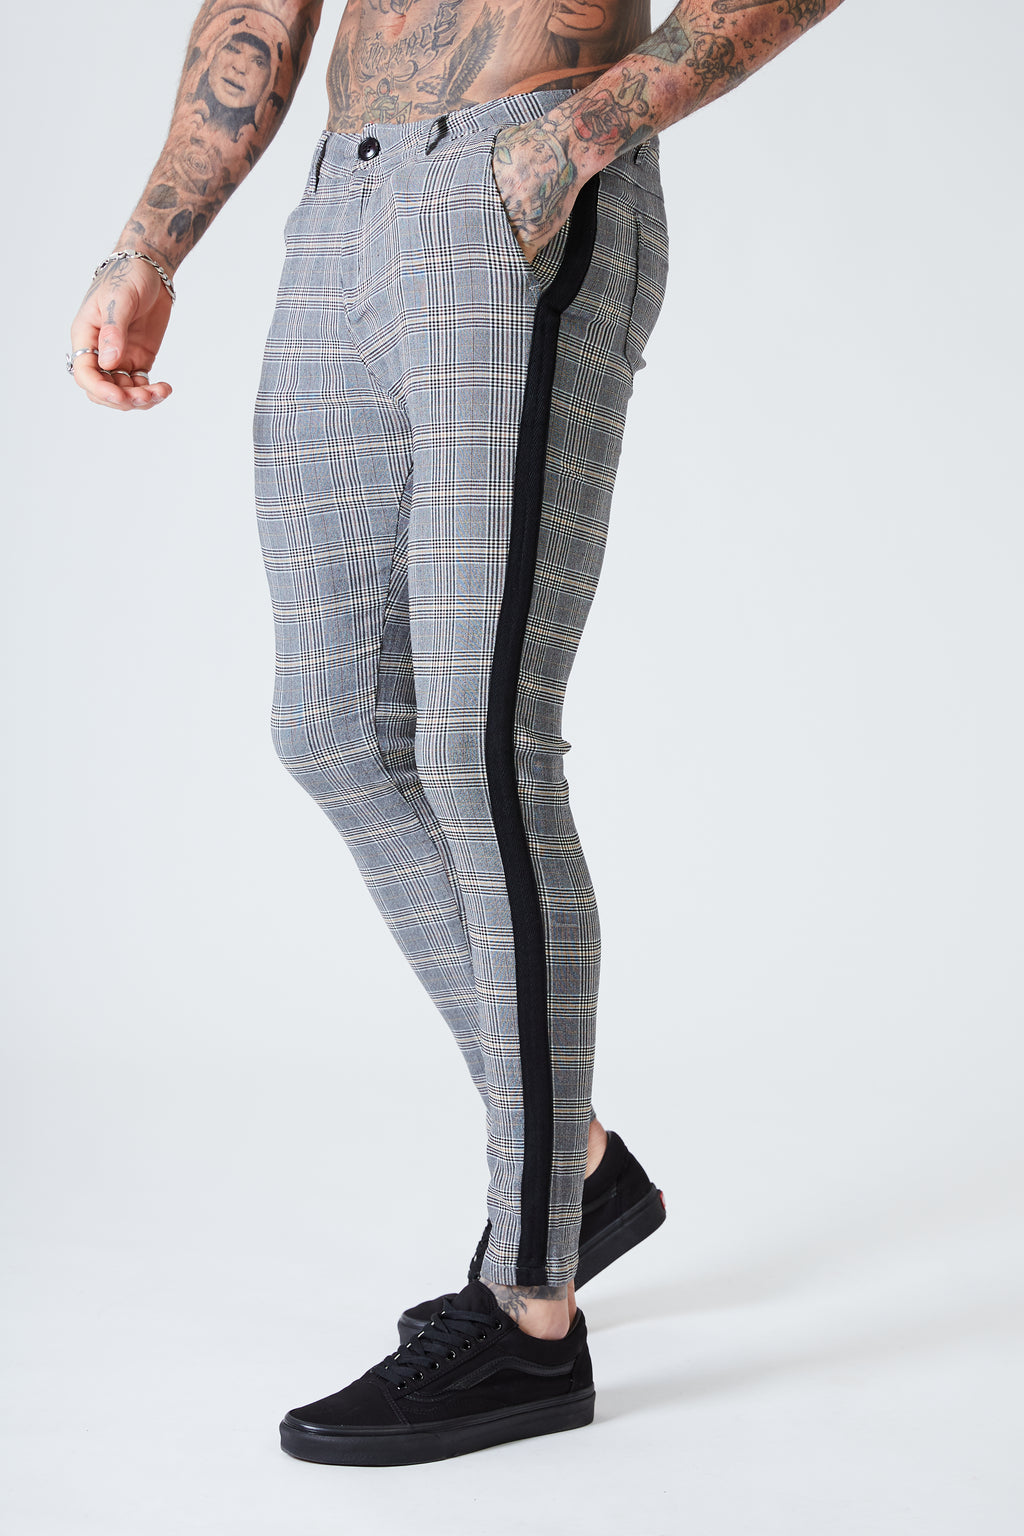 Check Trousers with Black Stripe - Stone Grey - SVPPLY. STUDIOS